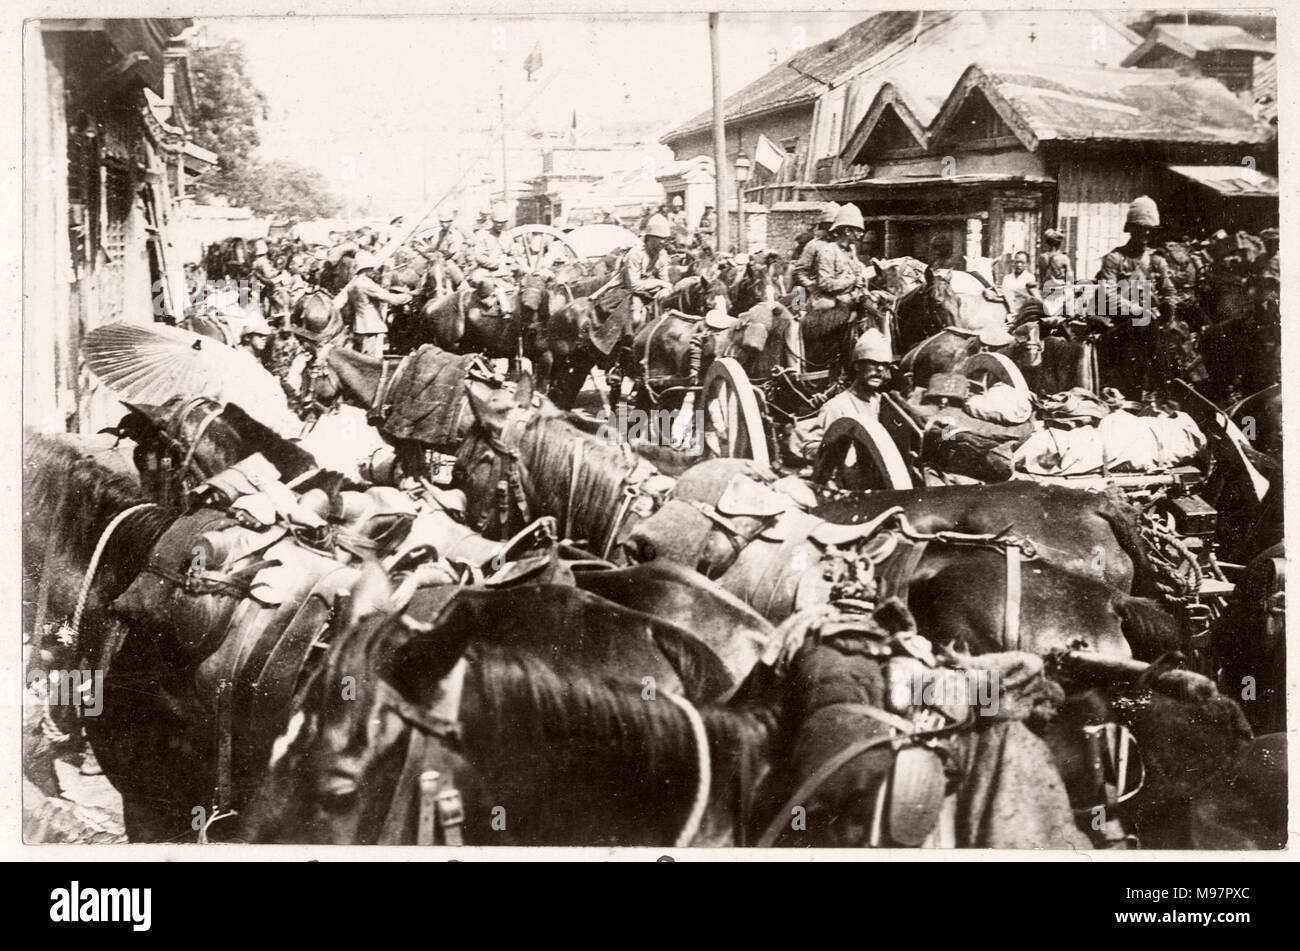 Vintage Photograph China c.1900 - Boxer rebellion or uprising, Yihetuan Movement - image from an album of a British soldier who took part of the supression of the uprising - British troops in Peking Beijing - Stock Image